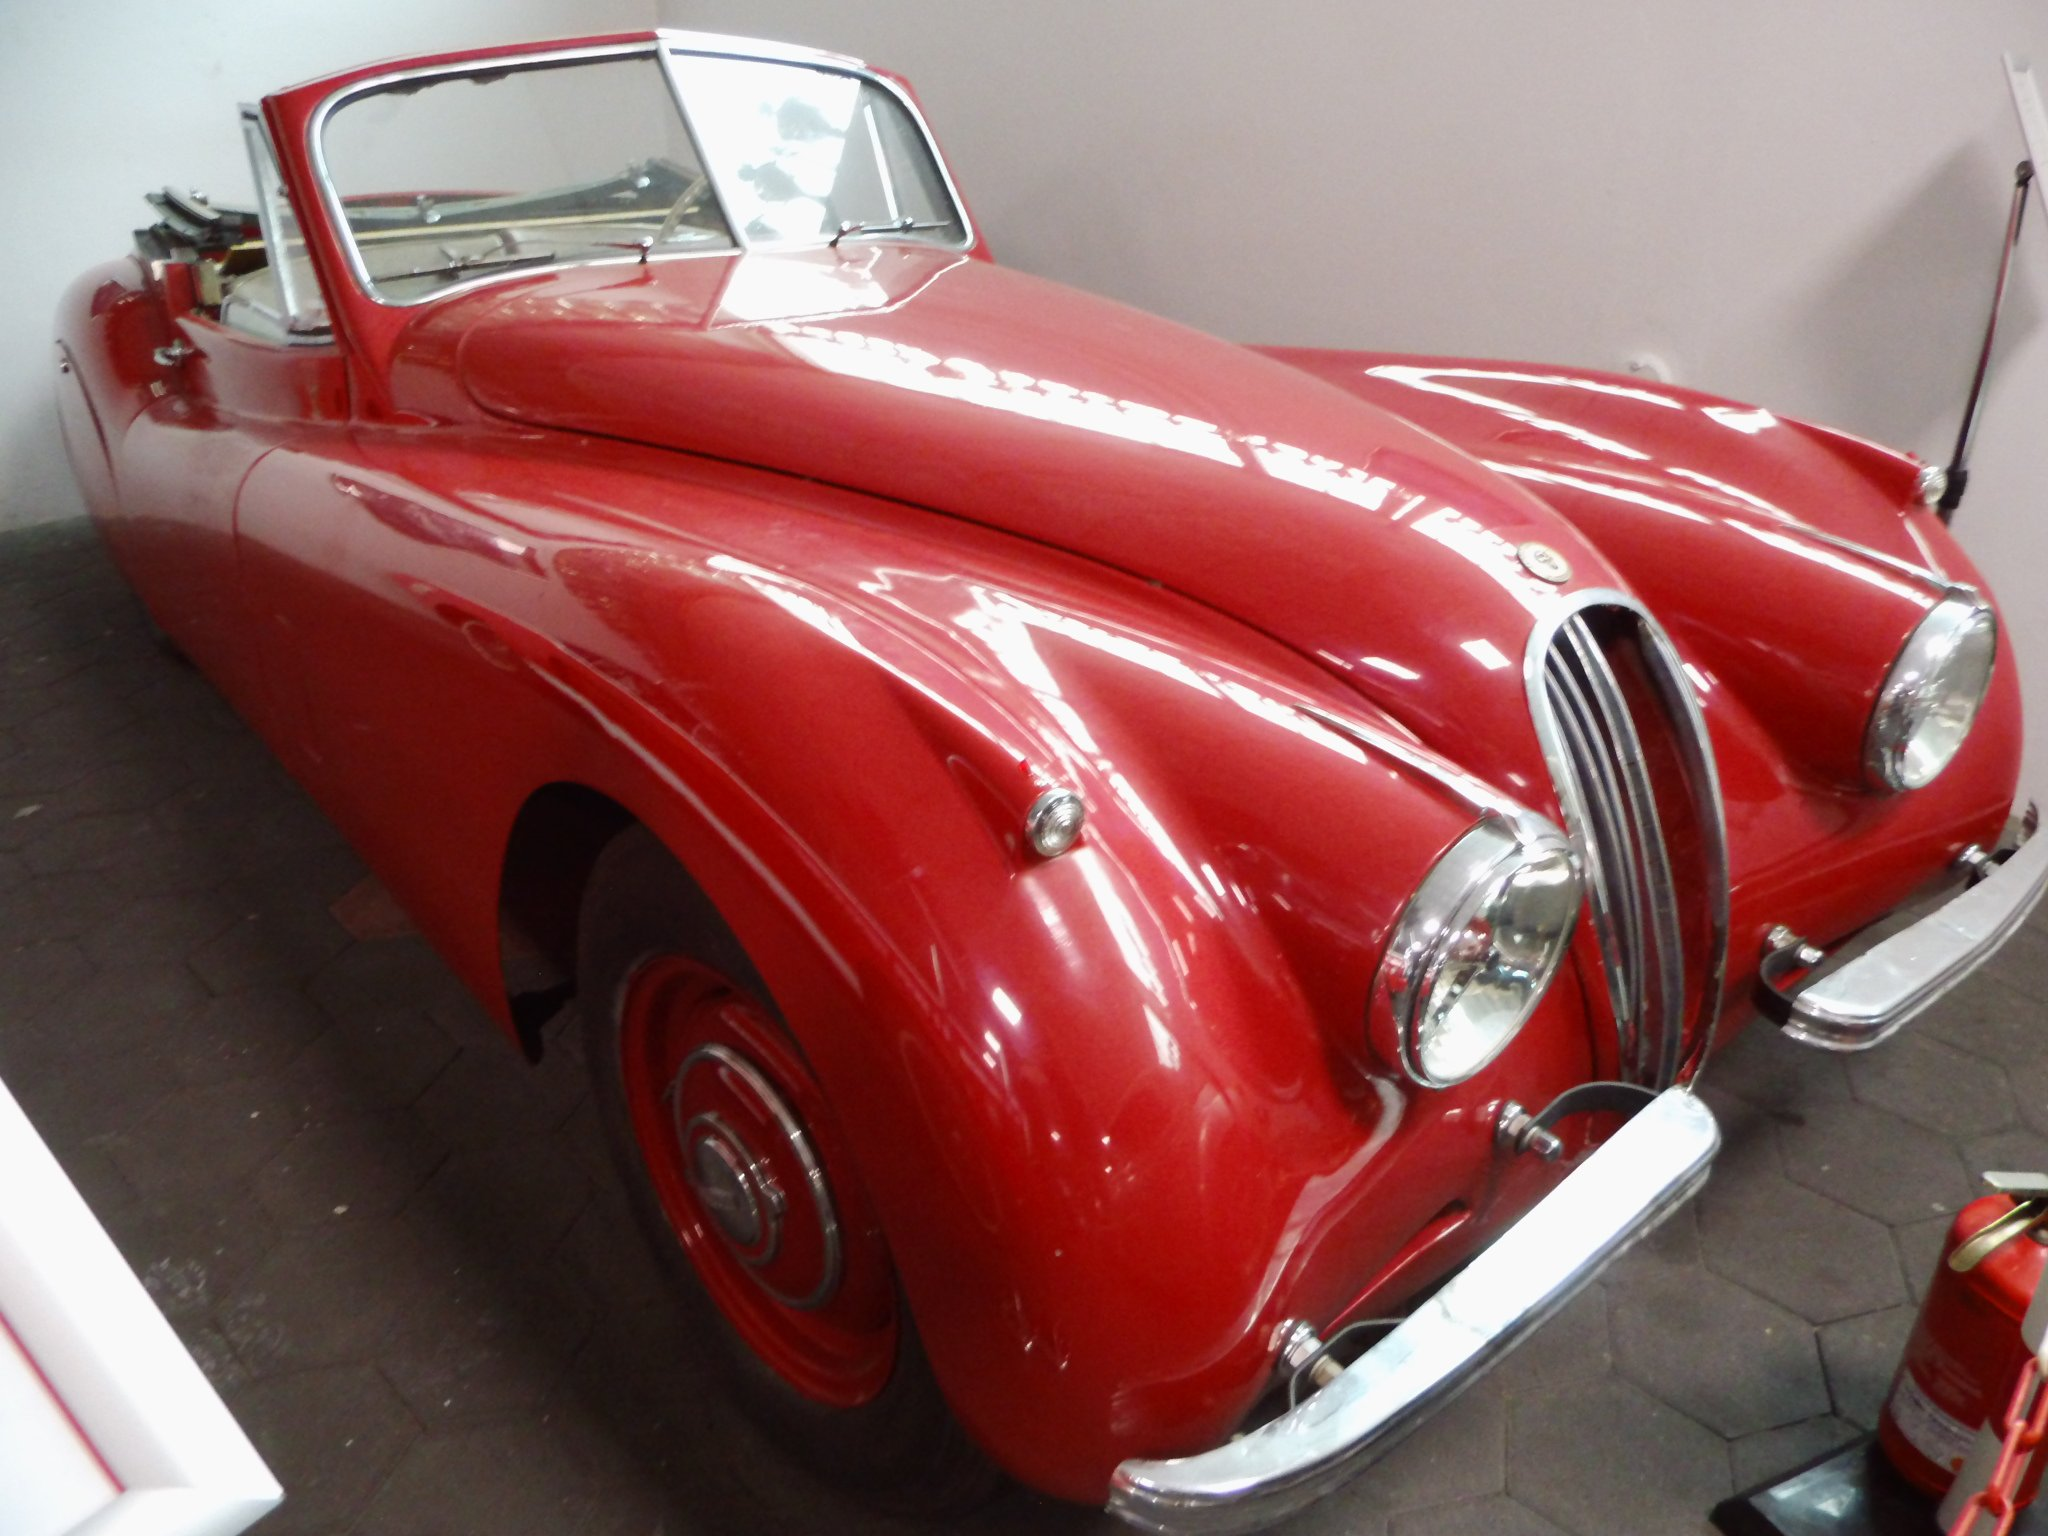 1954 Jaguar XK120 dhc restoration project